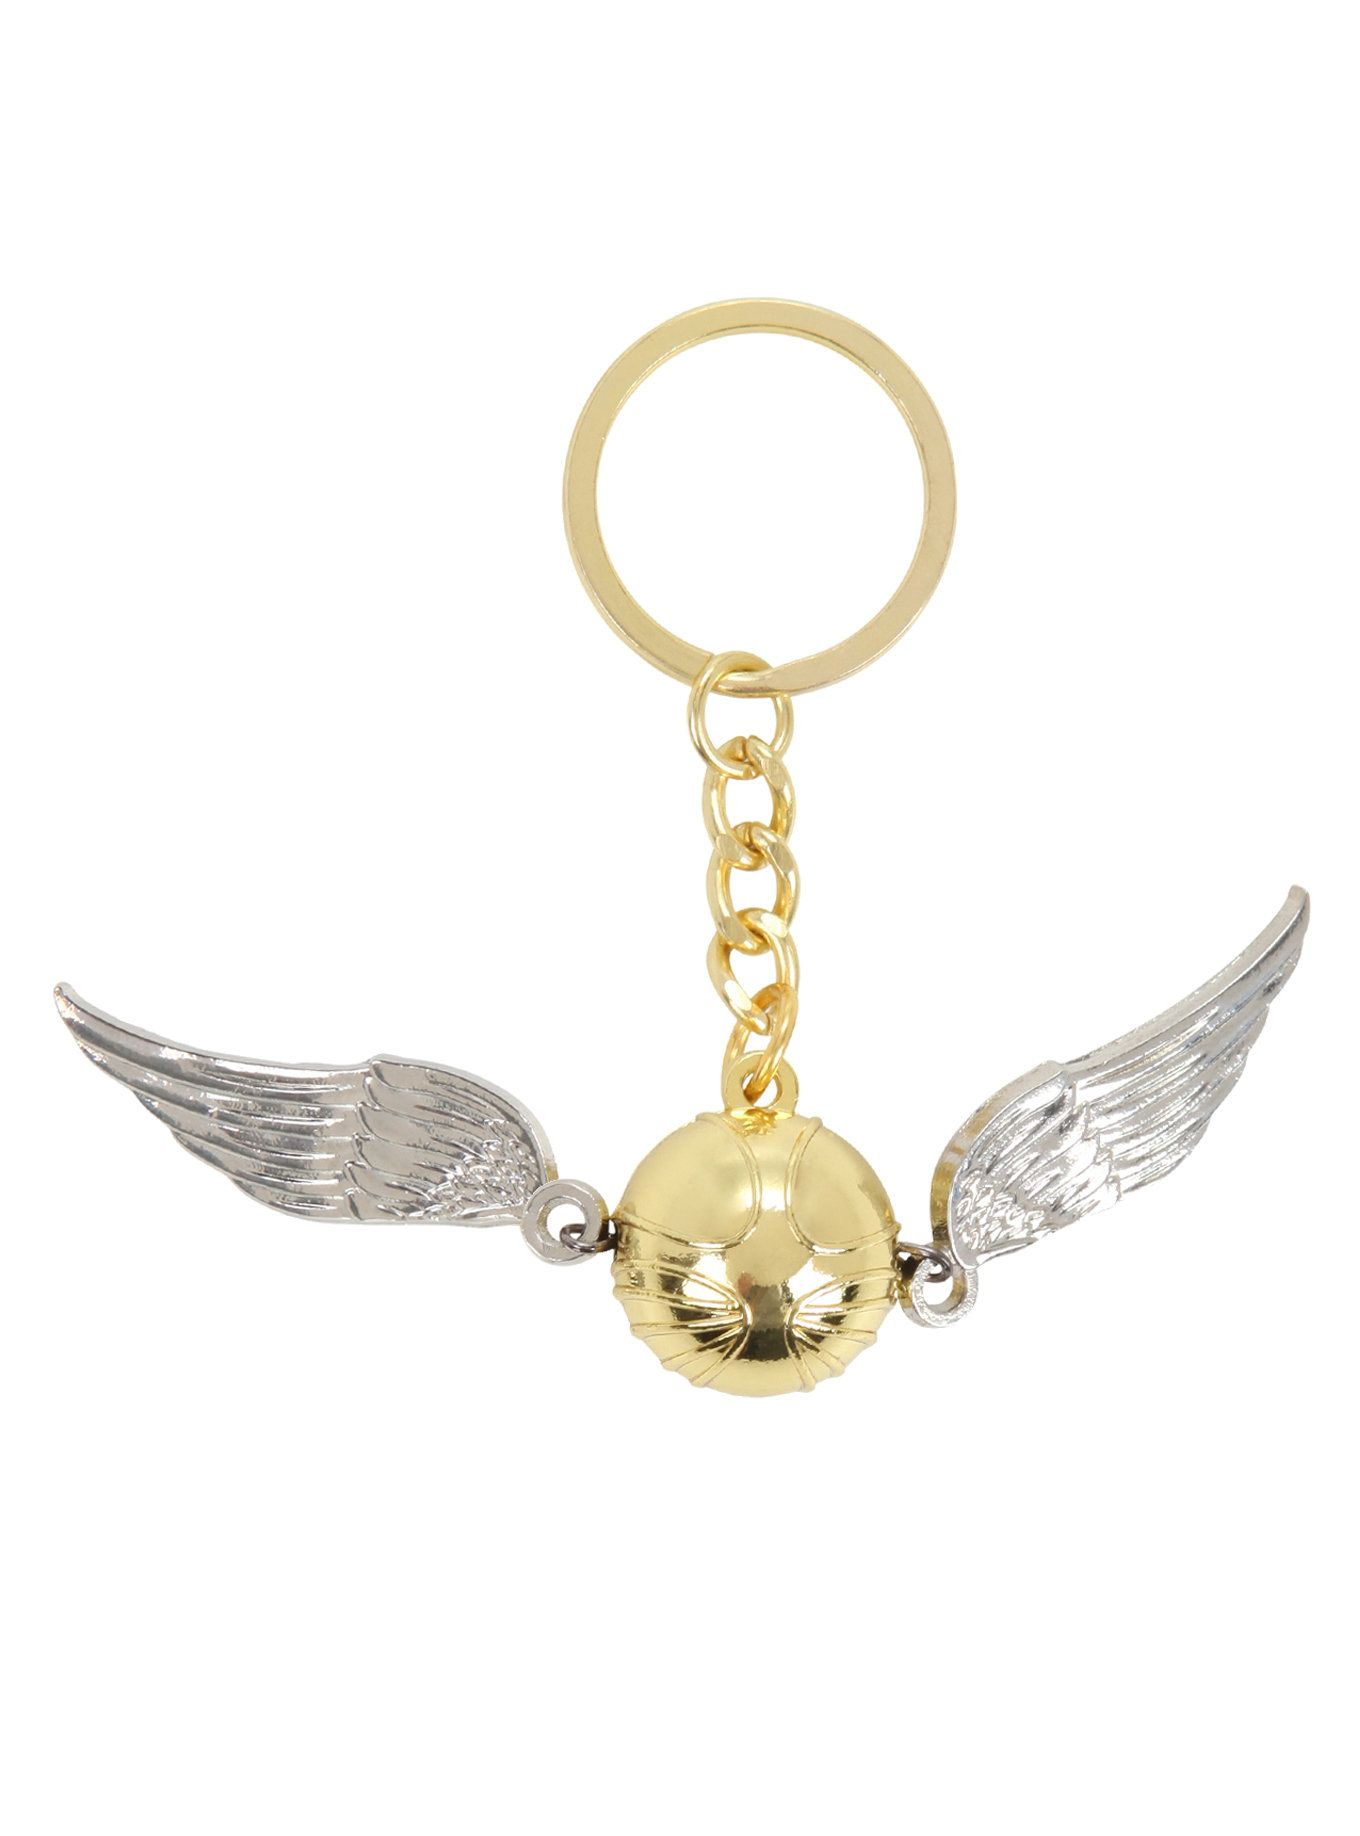 harry potter wedding bands Harry Potter Golden Snitch Key Chain Hot Topic